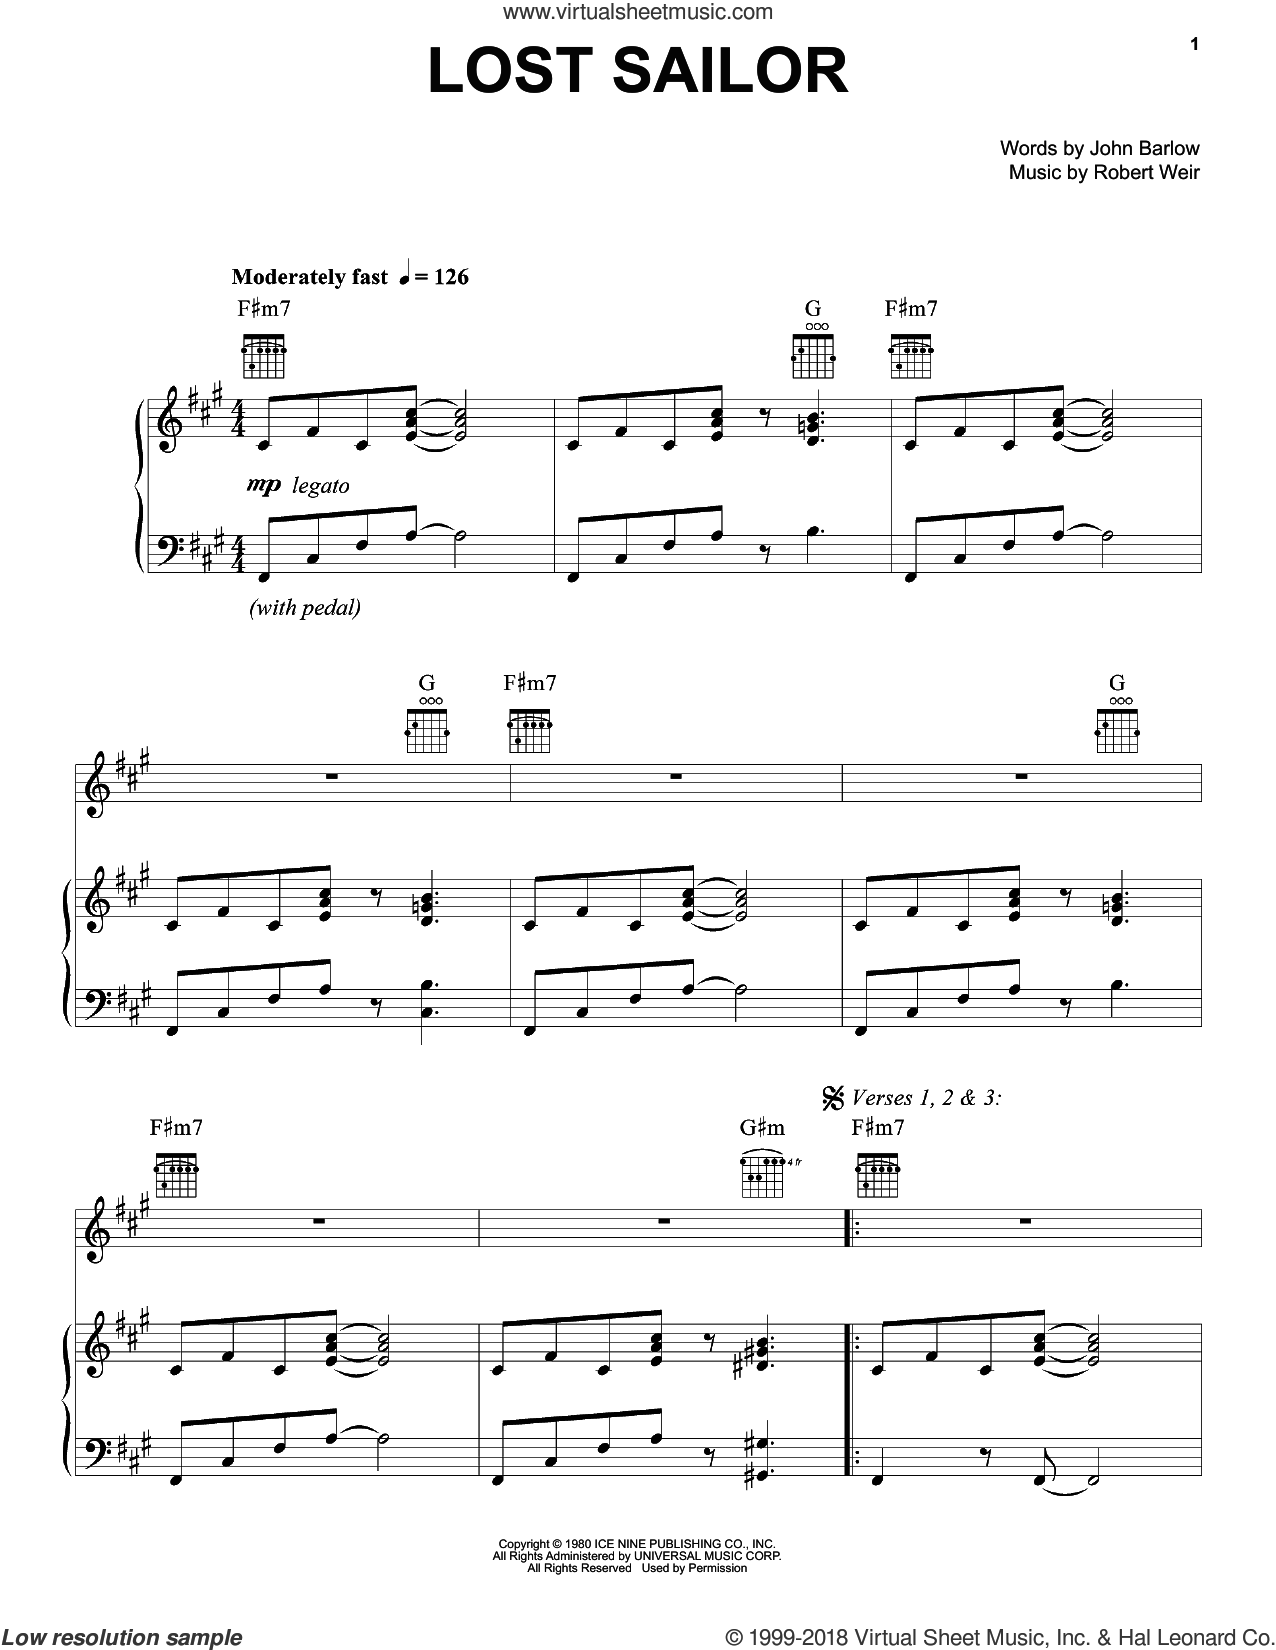 Lost Sailor sheet music for voice, piano or guitar by Robert Weir, Grateful Dead and John Barlow. Score Image Preview.